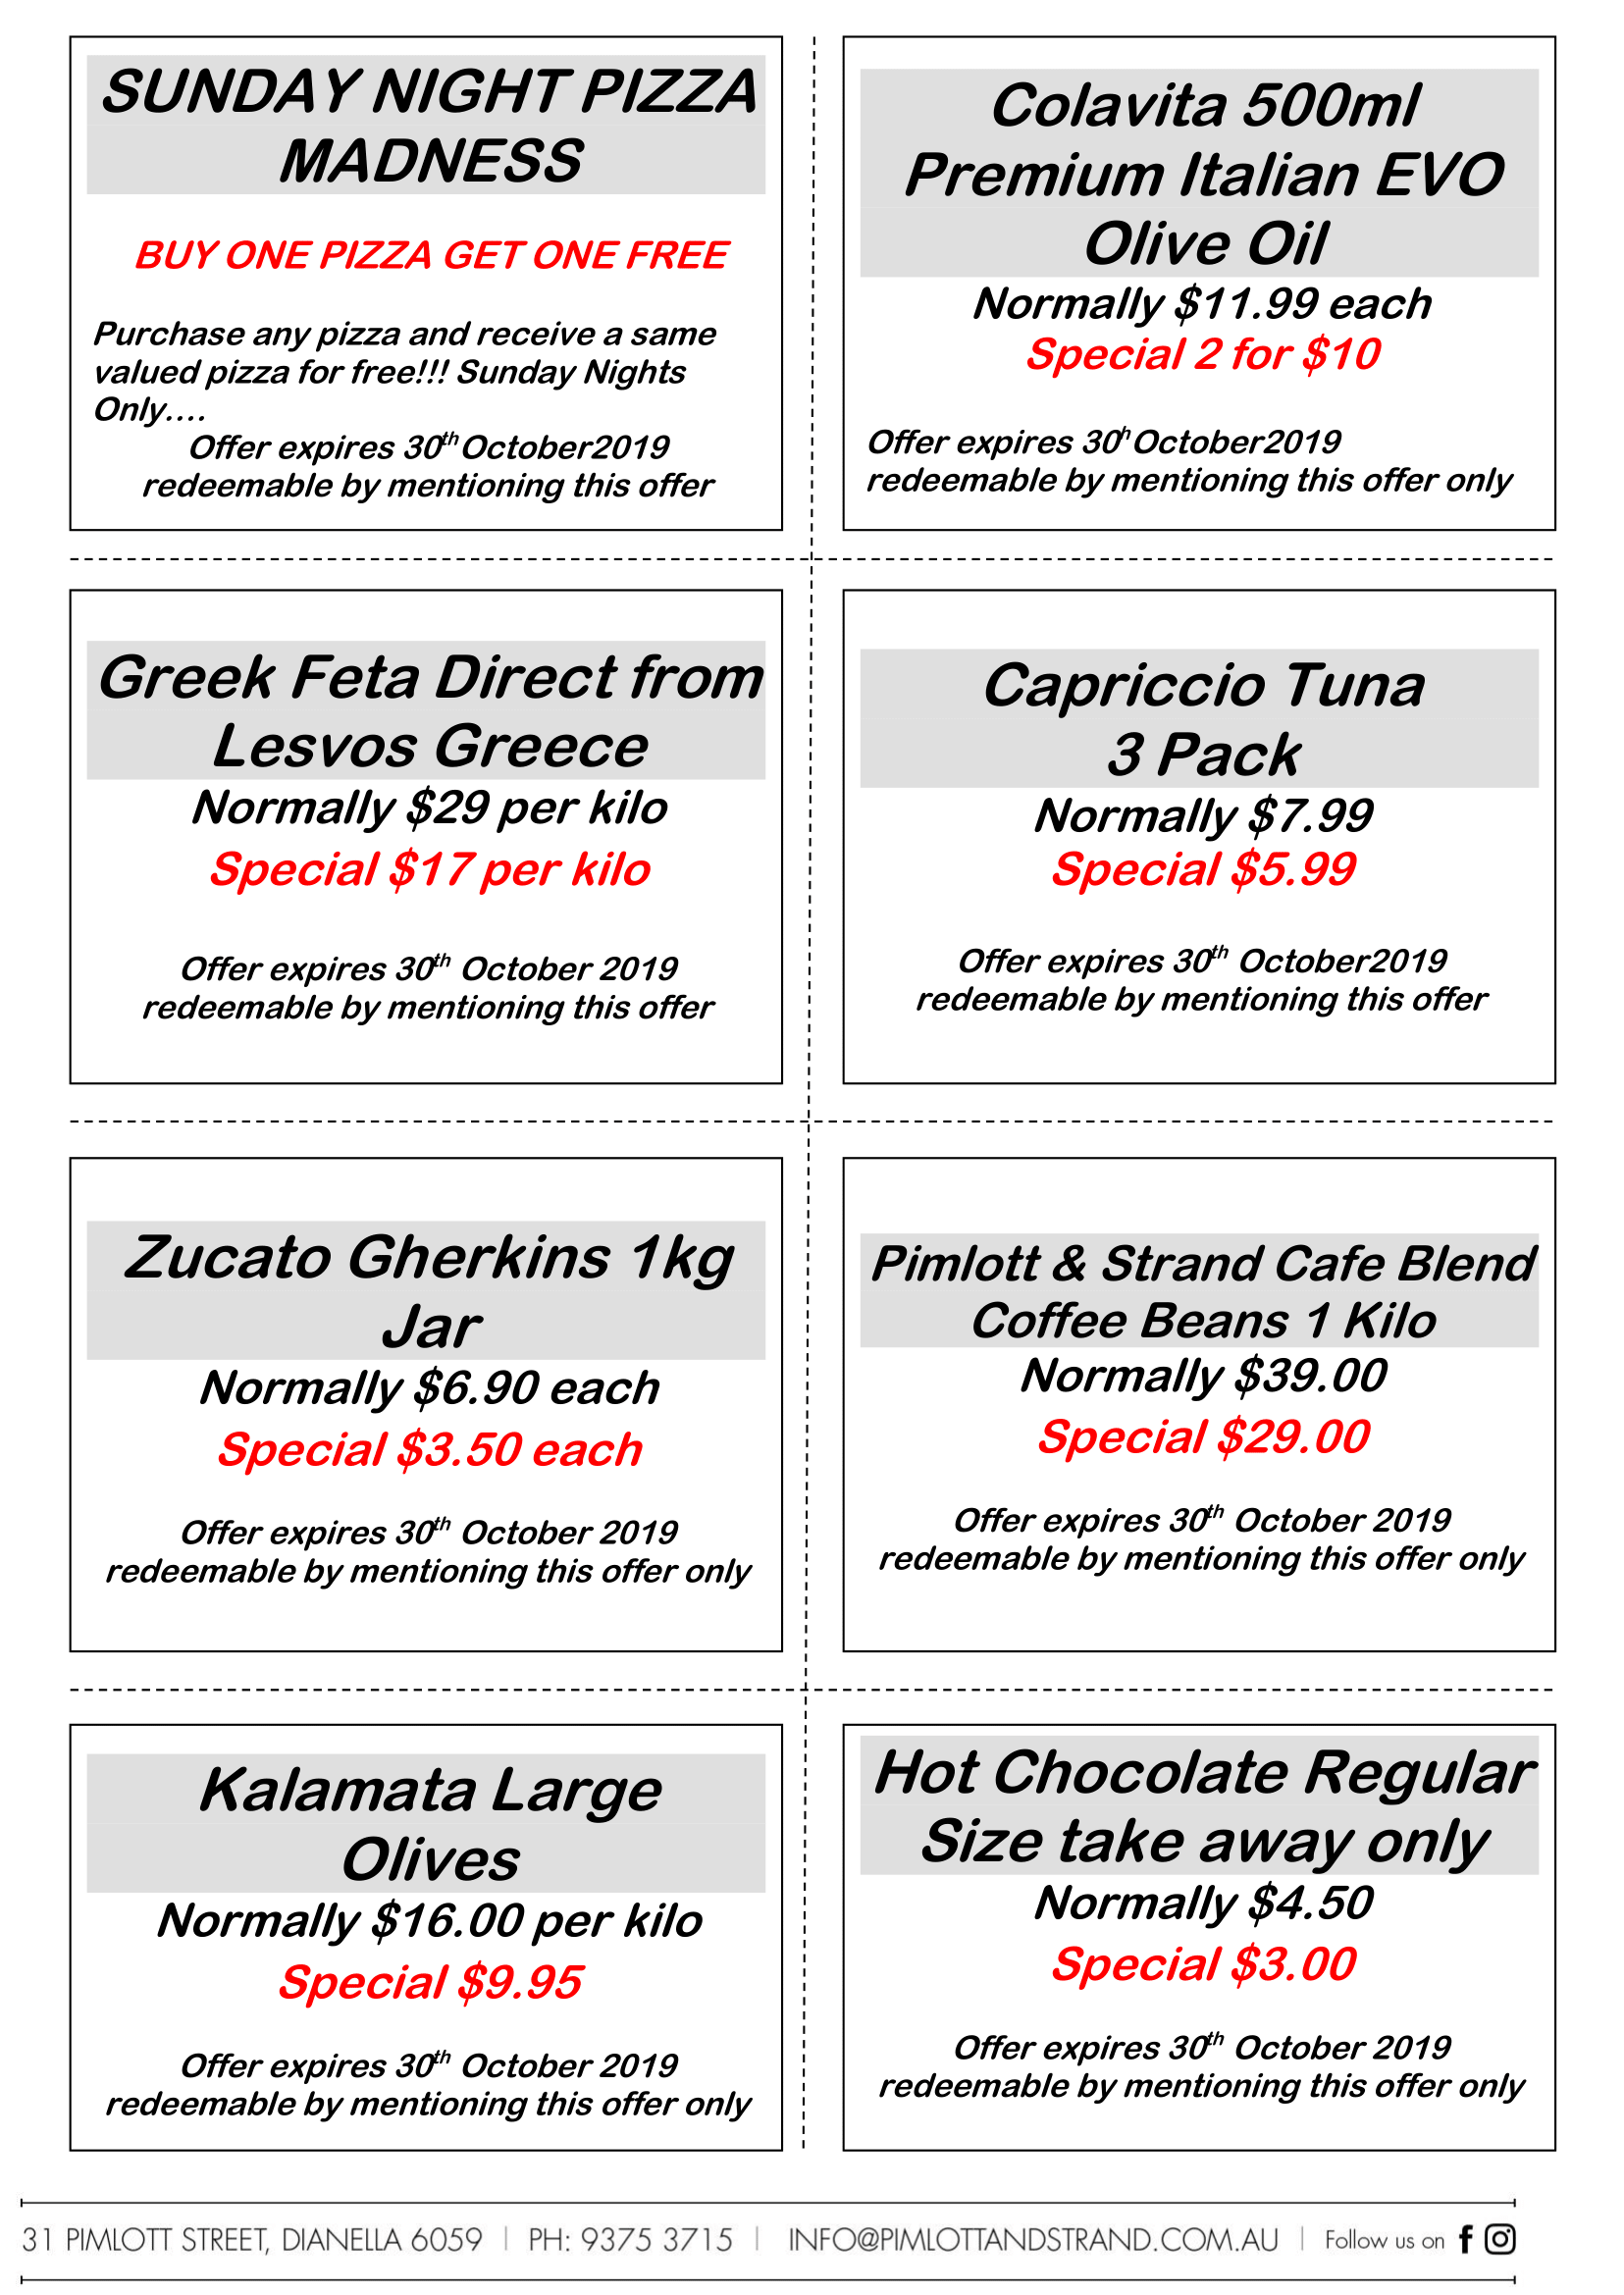 Pimlott & Strand Restaurant in Dianella October Specials